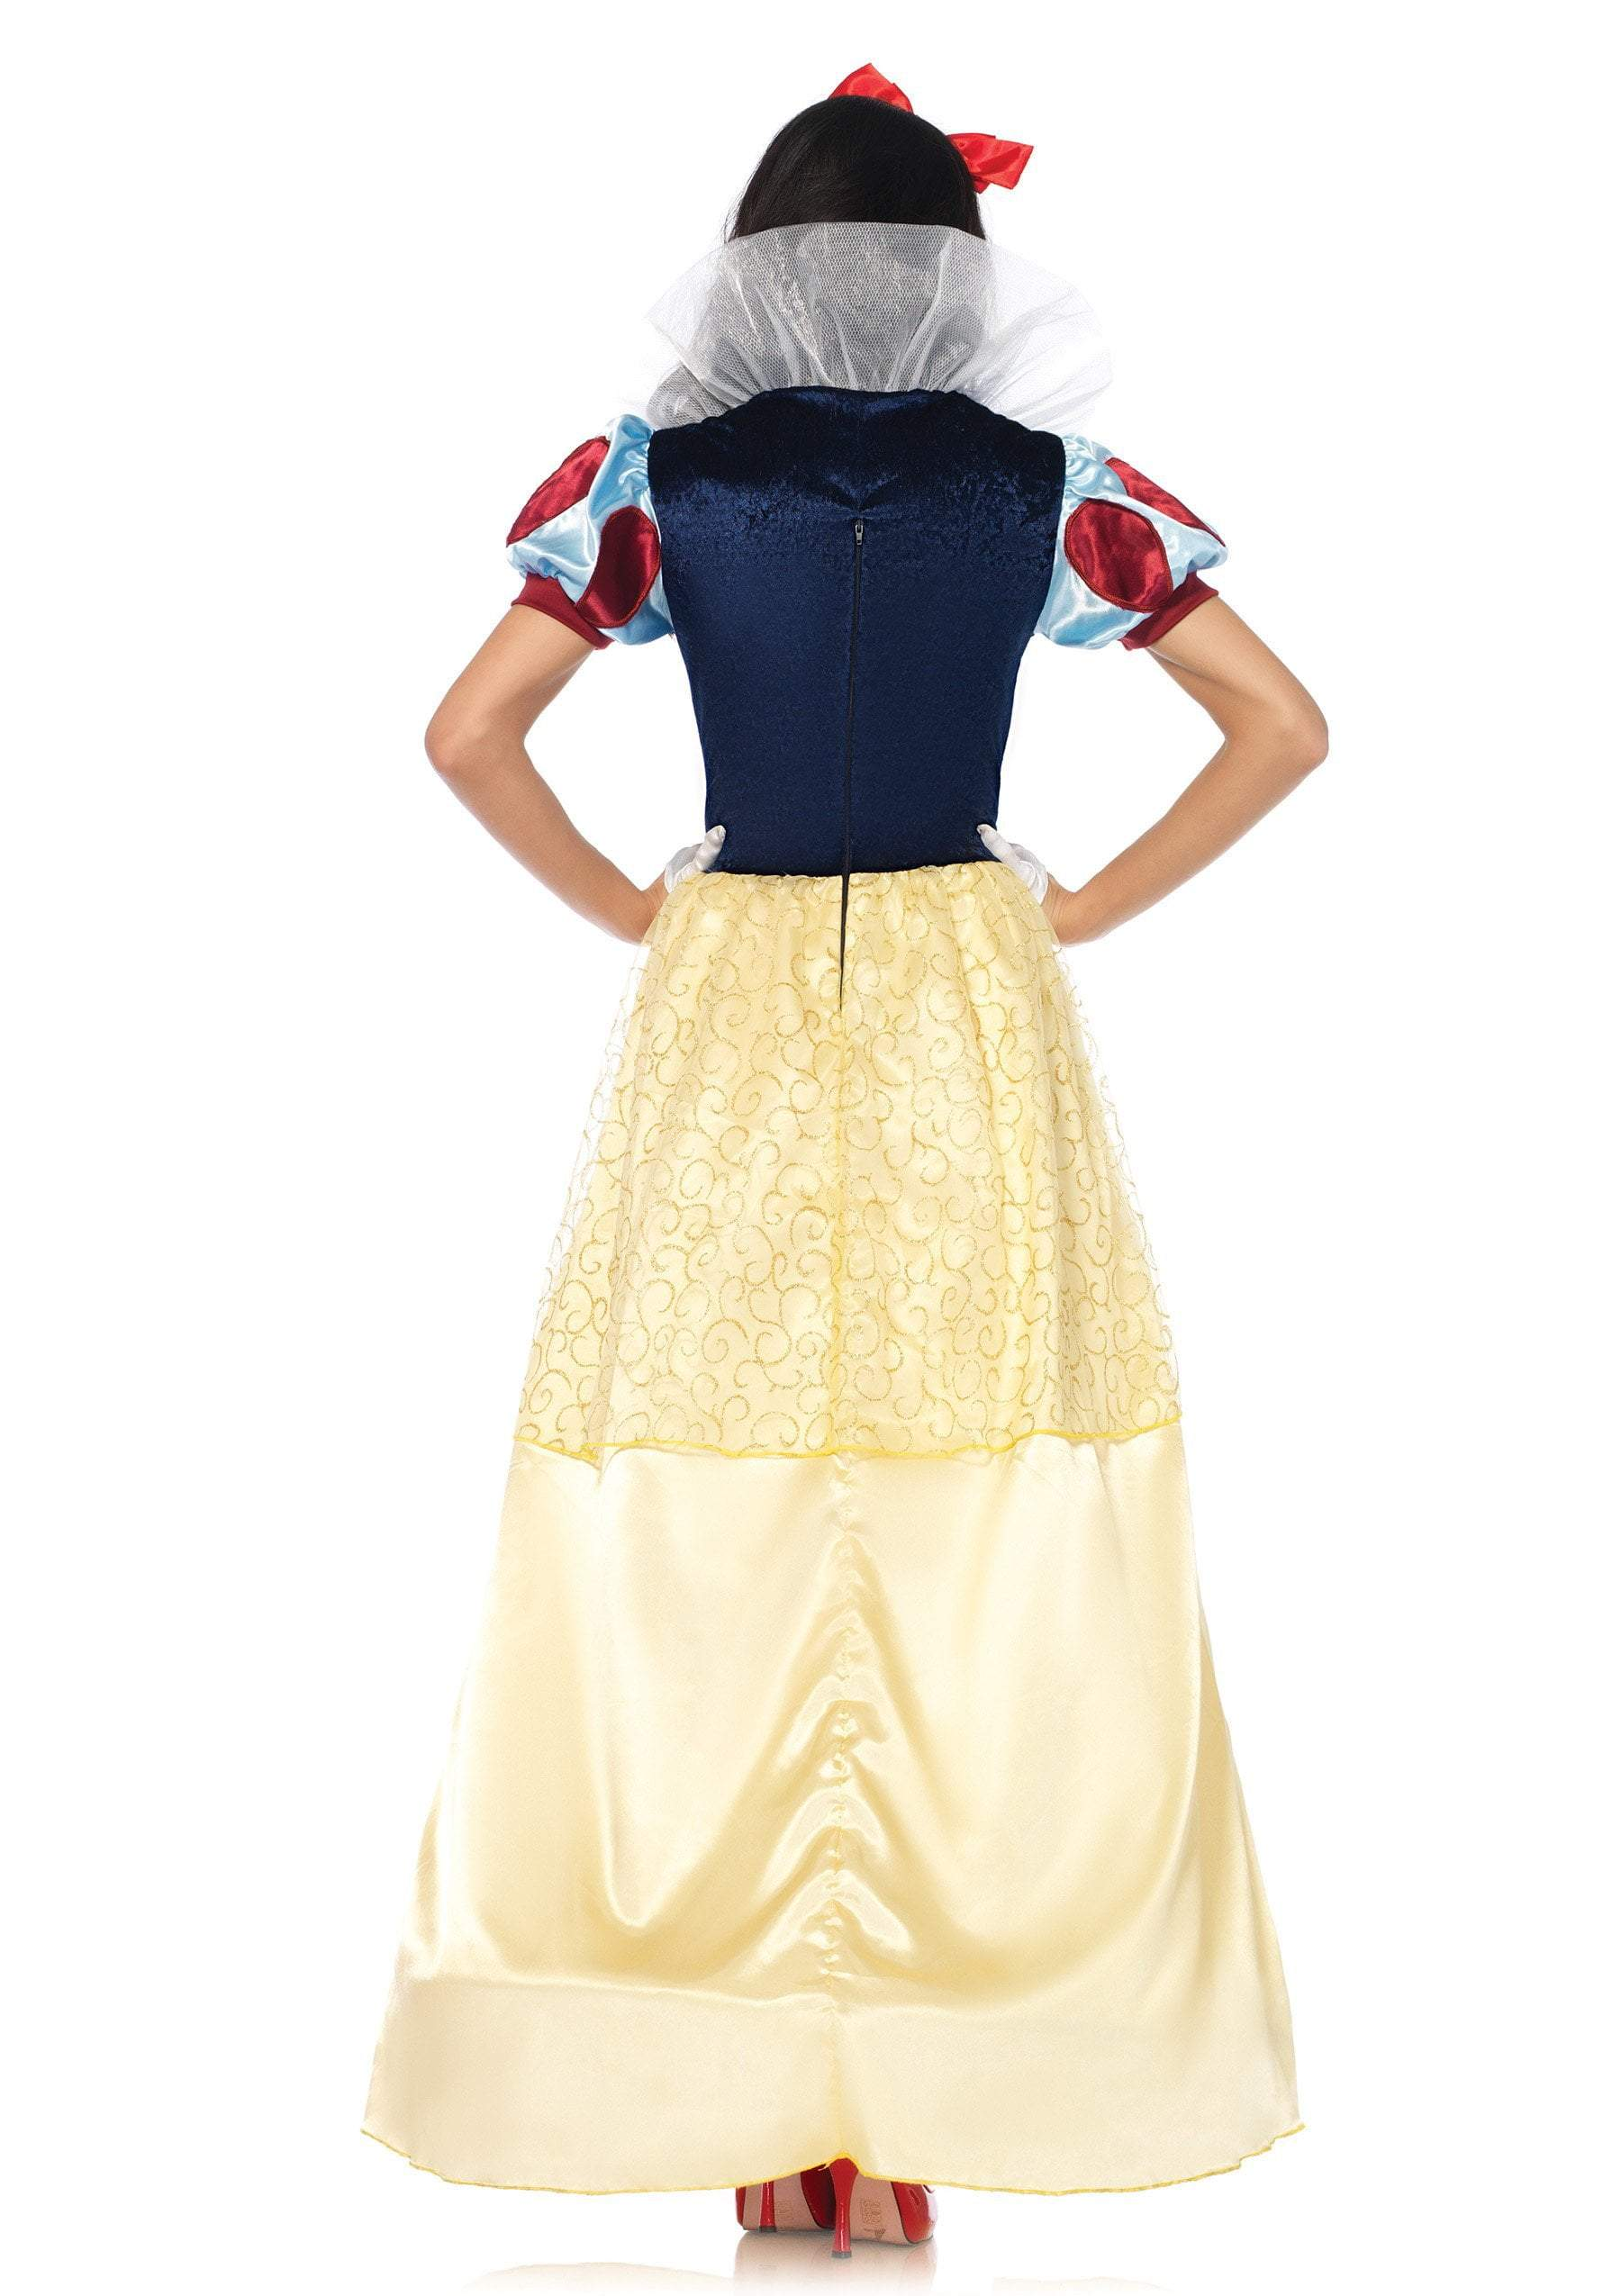 Leg Avenue Costumes Adult Deluxe Snow White Costume